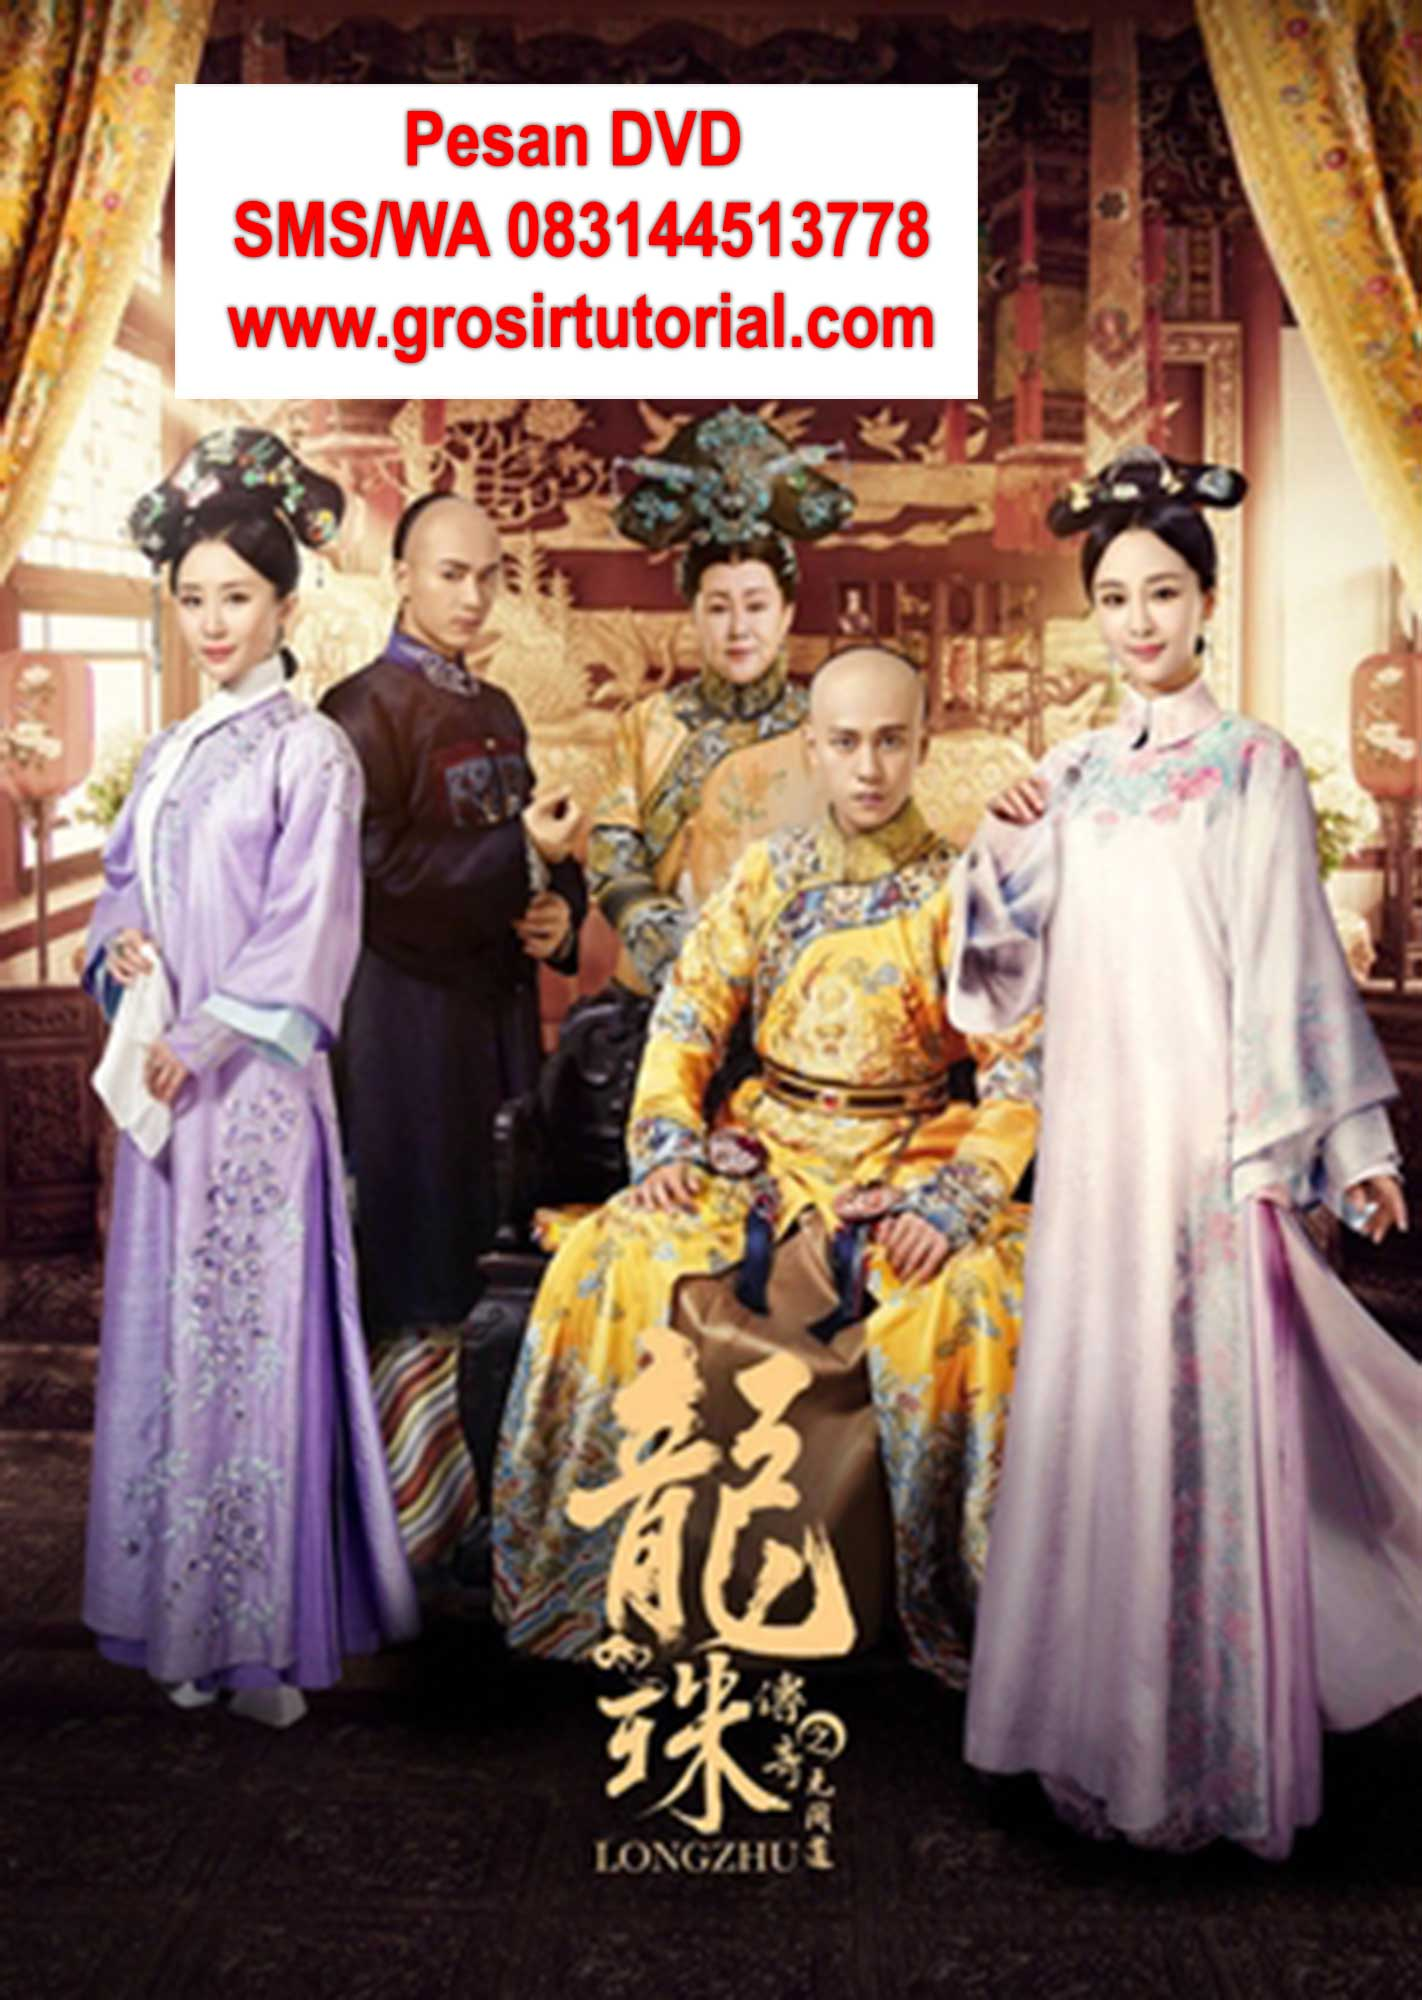 Jual-dvd-Mandarin-Legend-of-The-Dragon-Pearl-The-Indistinguishable-Road